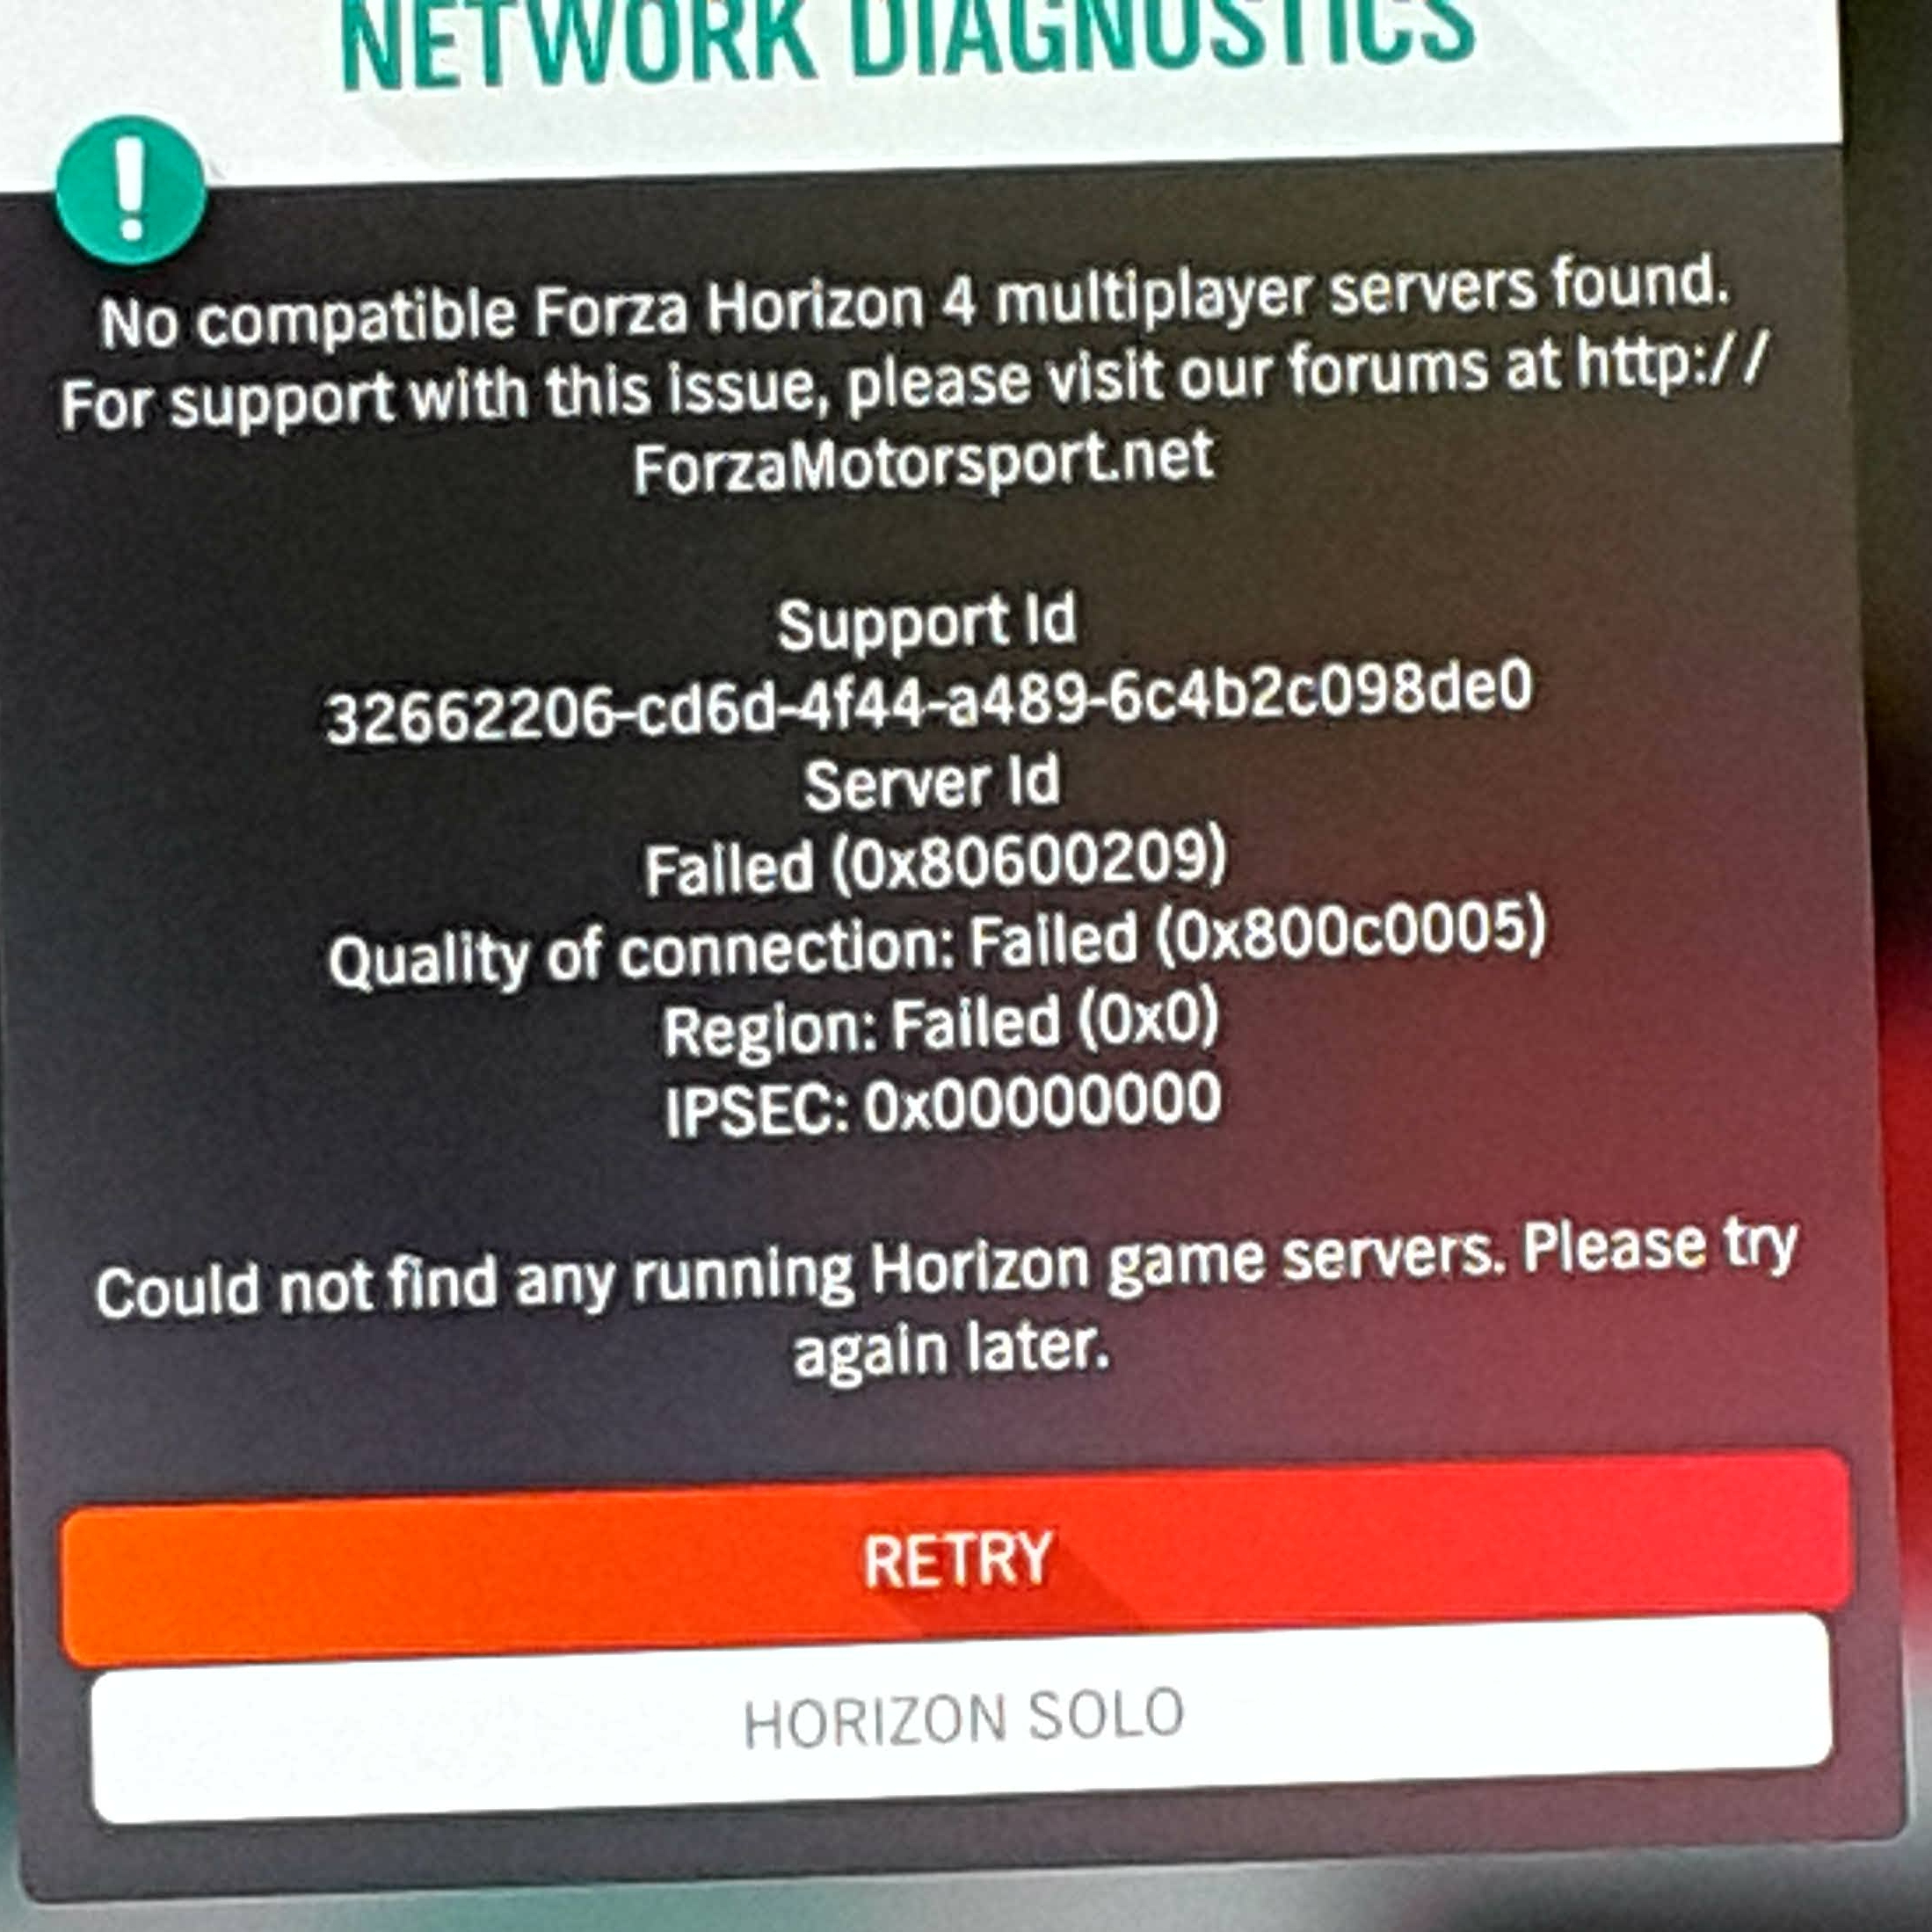 No compatible Forza Horizon 4 multiplayer servers found  - Microsoft